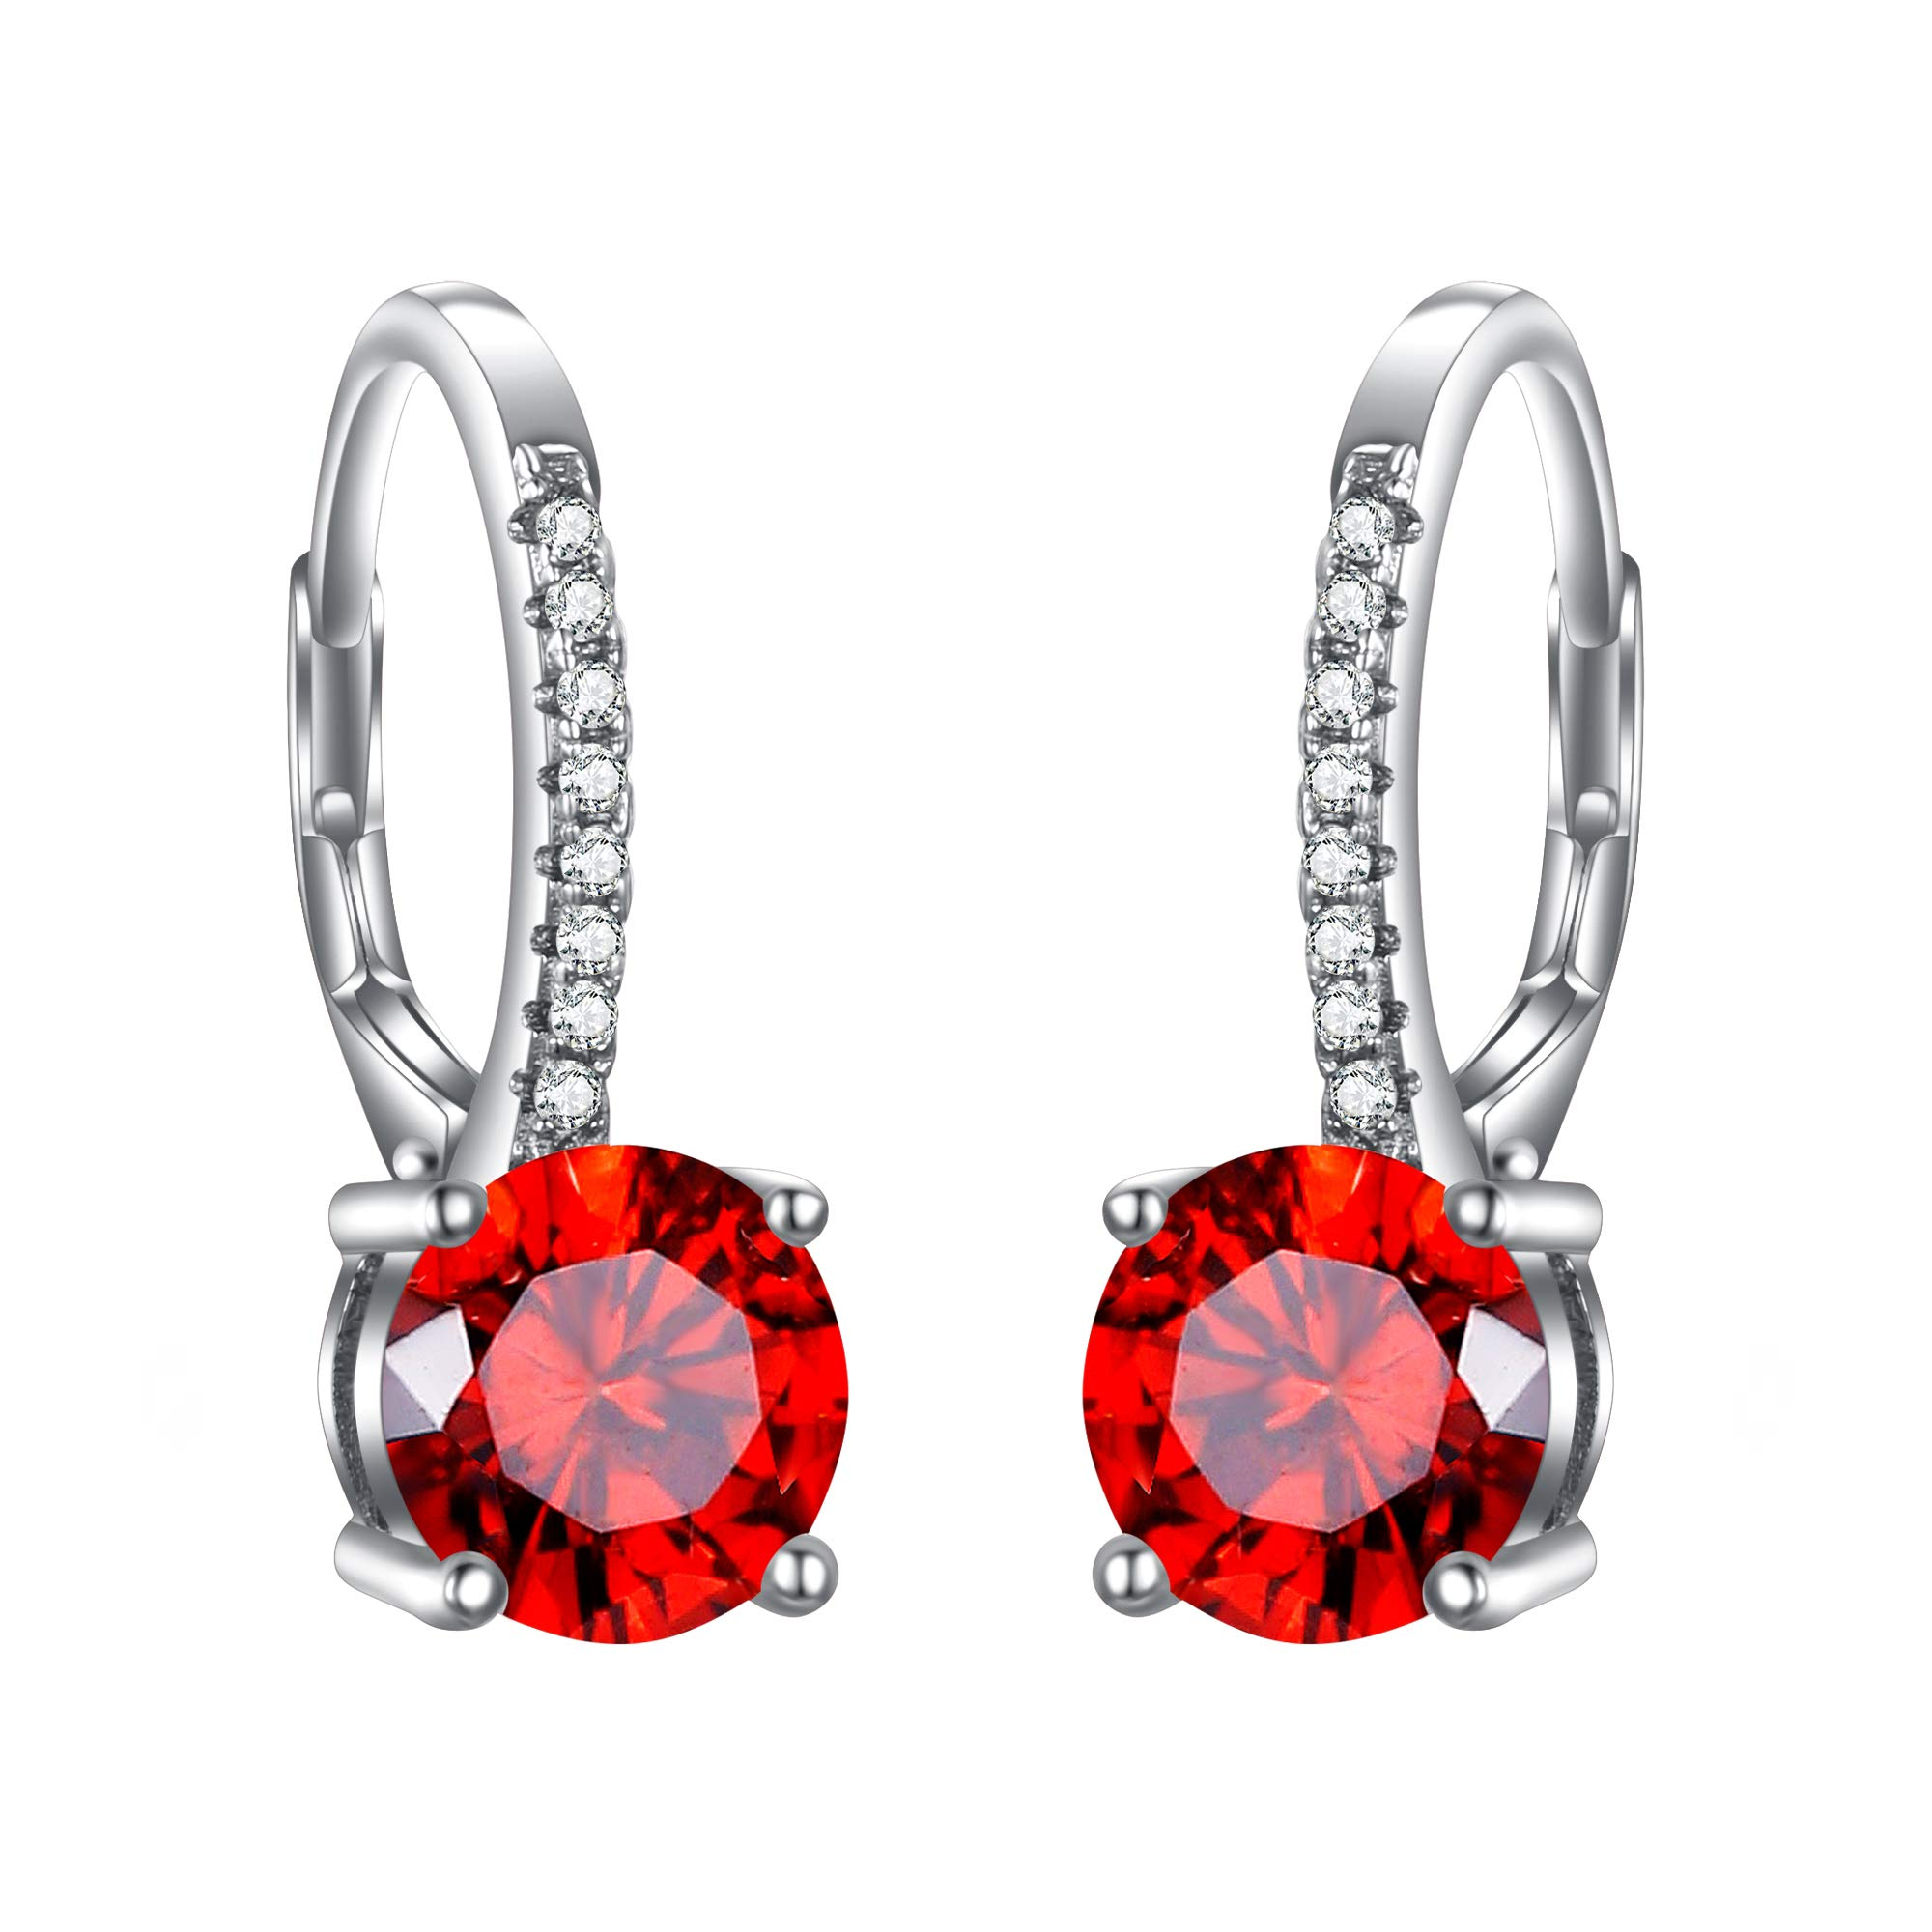 EVER FAITH 925 Sterling Silver Round Cut CZ Prong Setting Gorgeous Bridal Prom Leverback Dangle Earrings product image